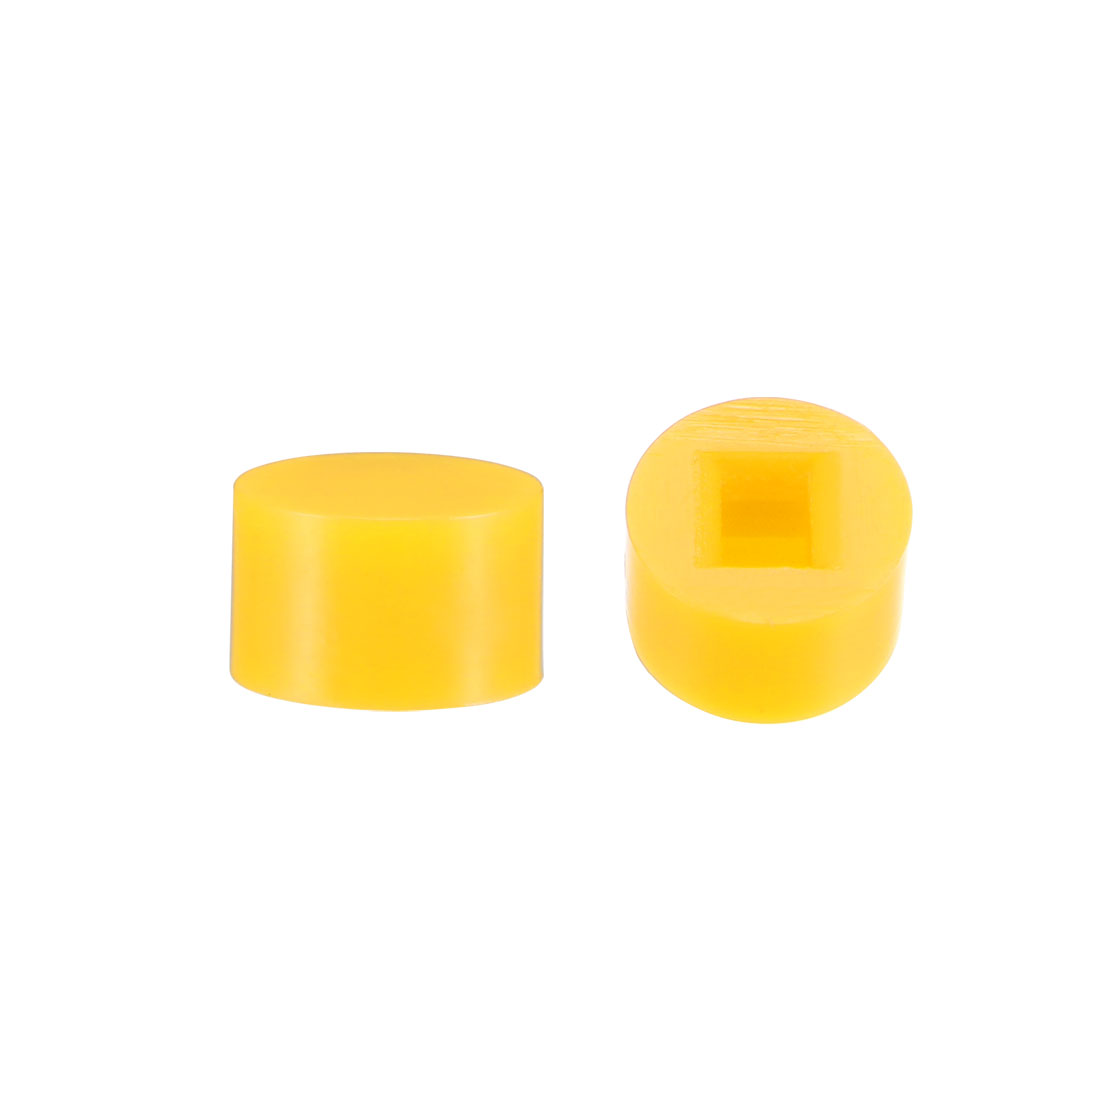 40Pcs 6x3.7mm Pushbutton Switch Cap Cover for 5.8x5.8 Latching TactSwitch Yellow